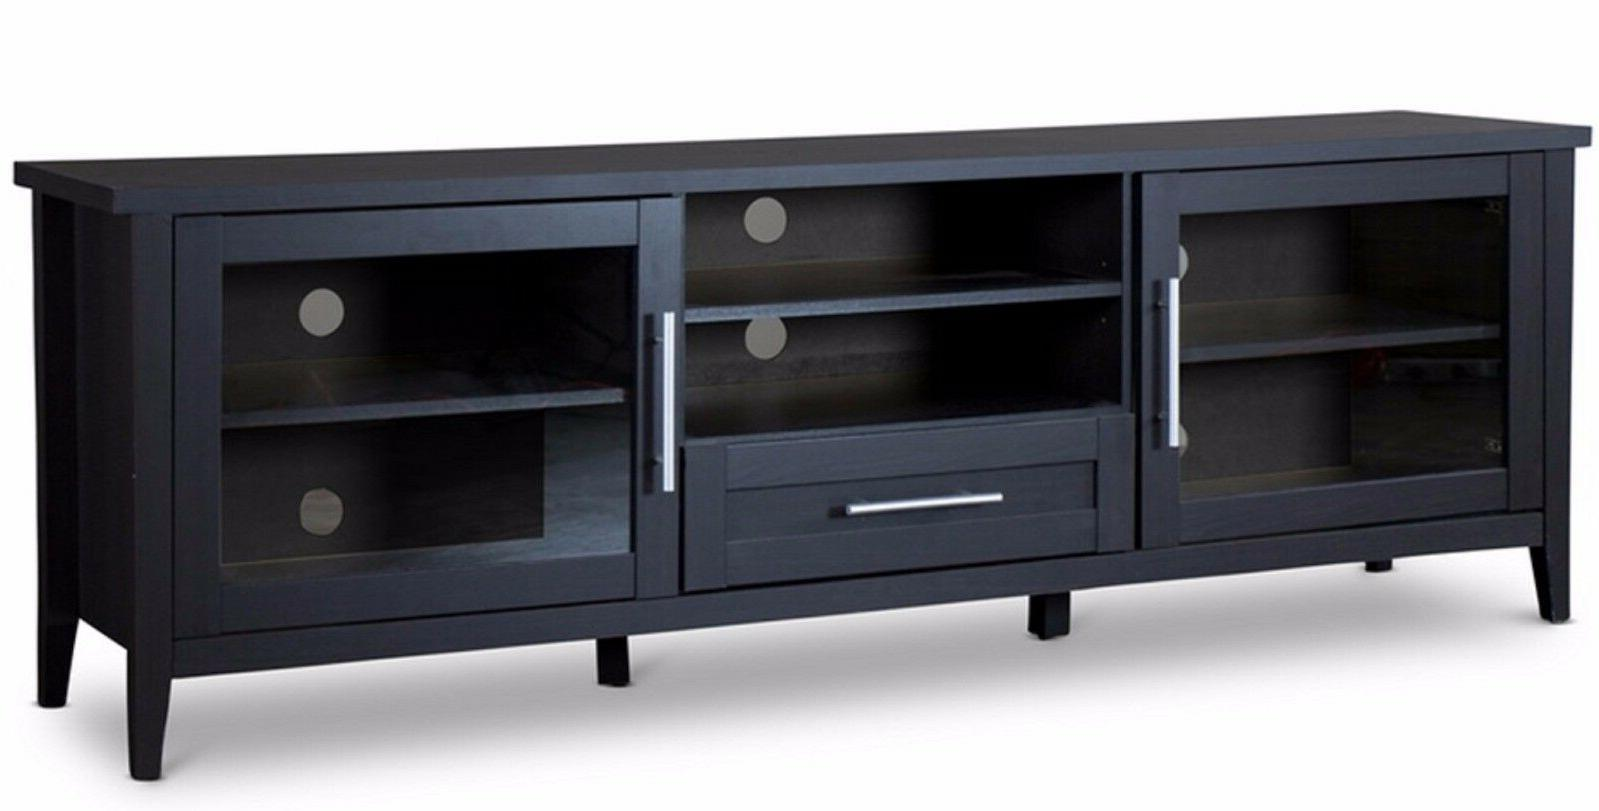 Television Media TV Stand Entertainment Center DVD